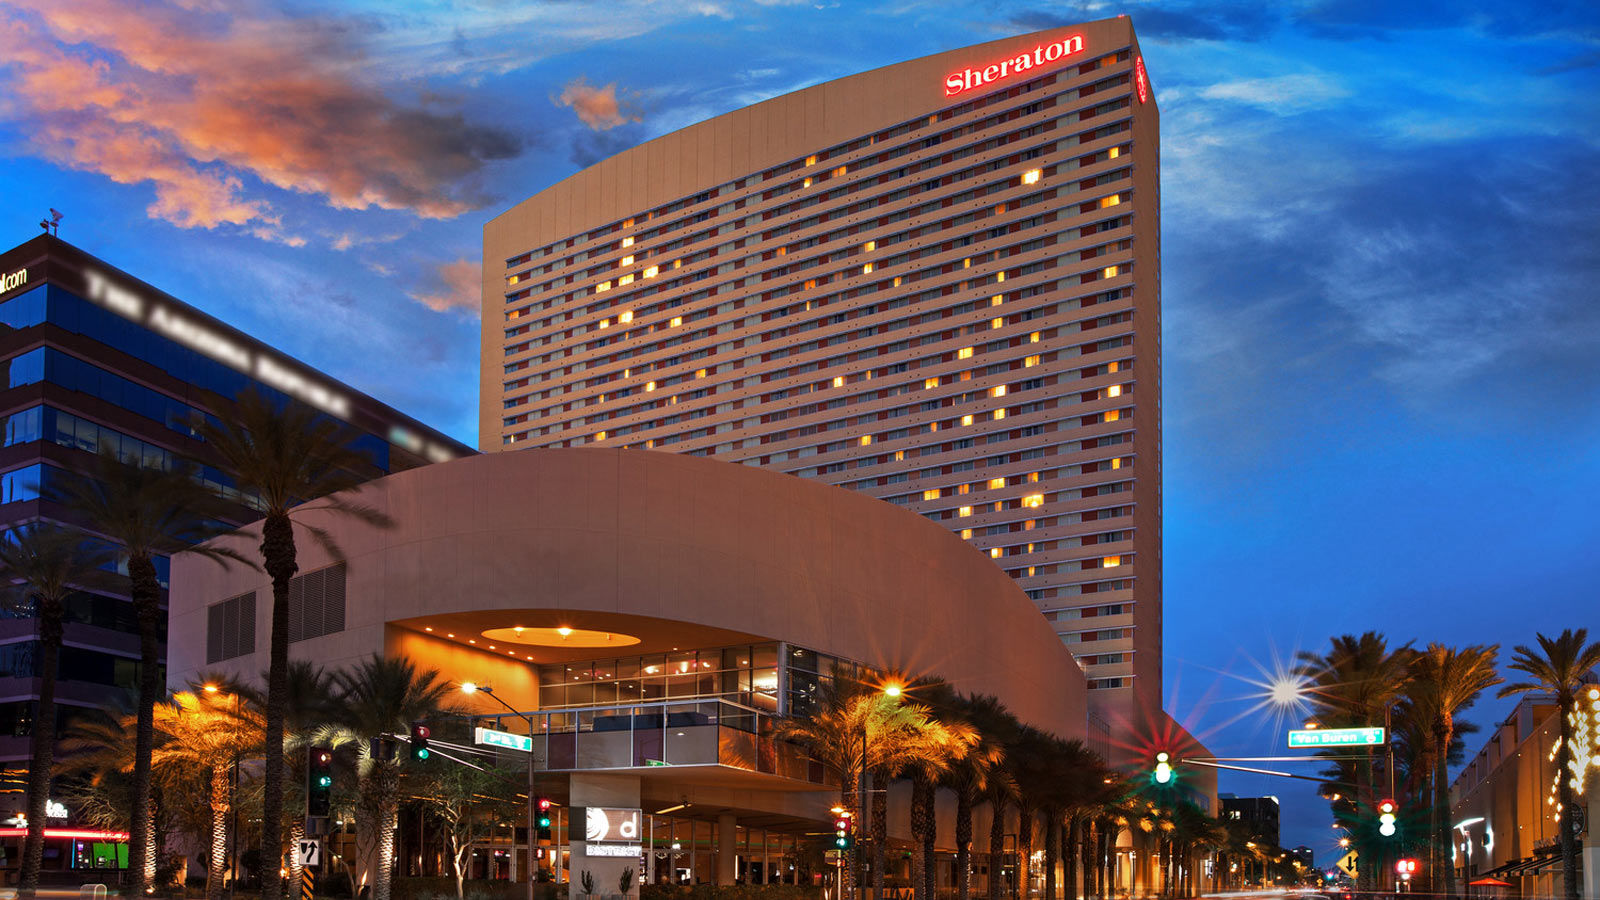 Phoenix Wedding Venues - The Sheraton Phoenix Downtown Hotel